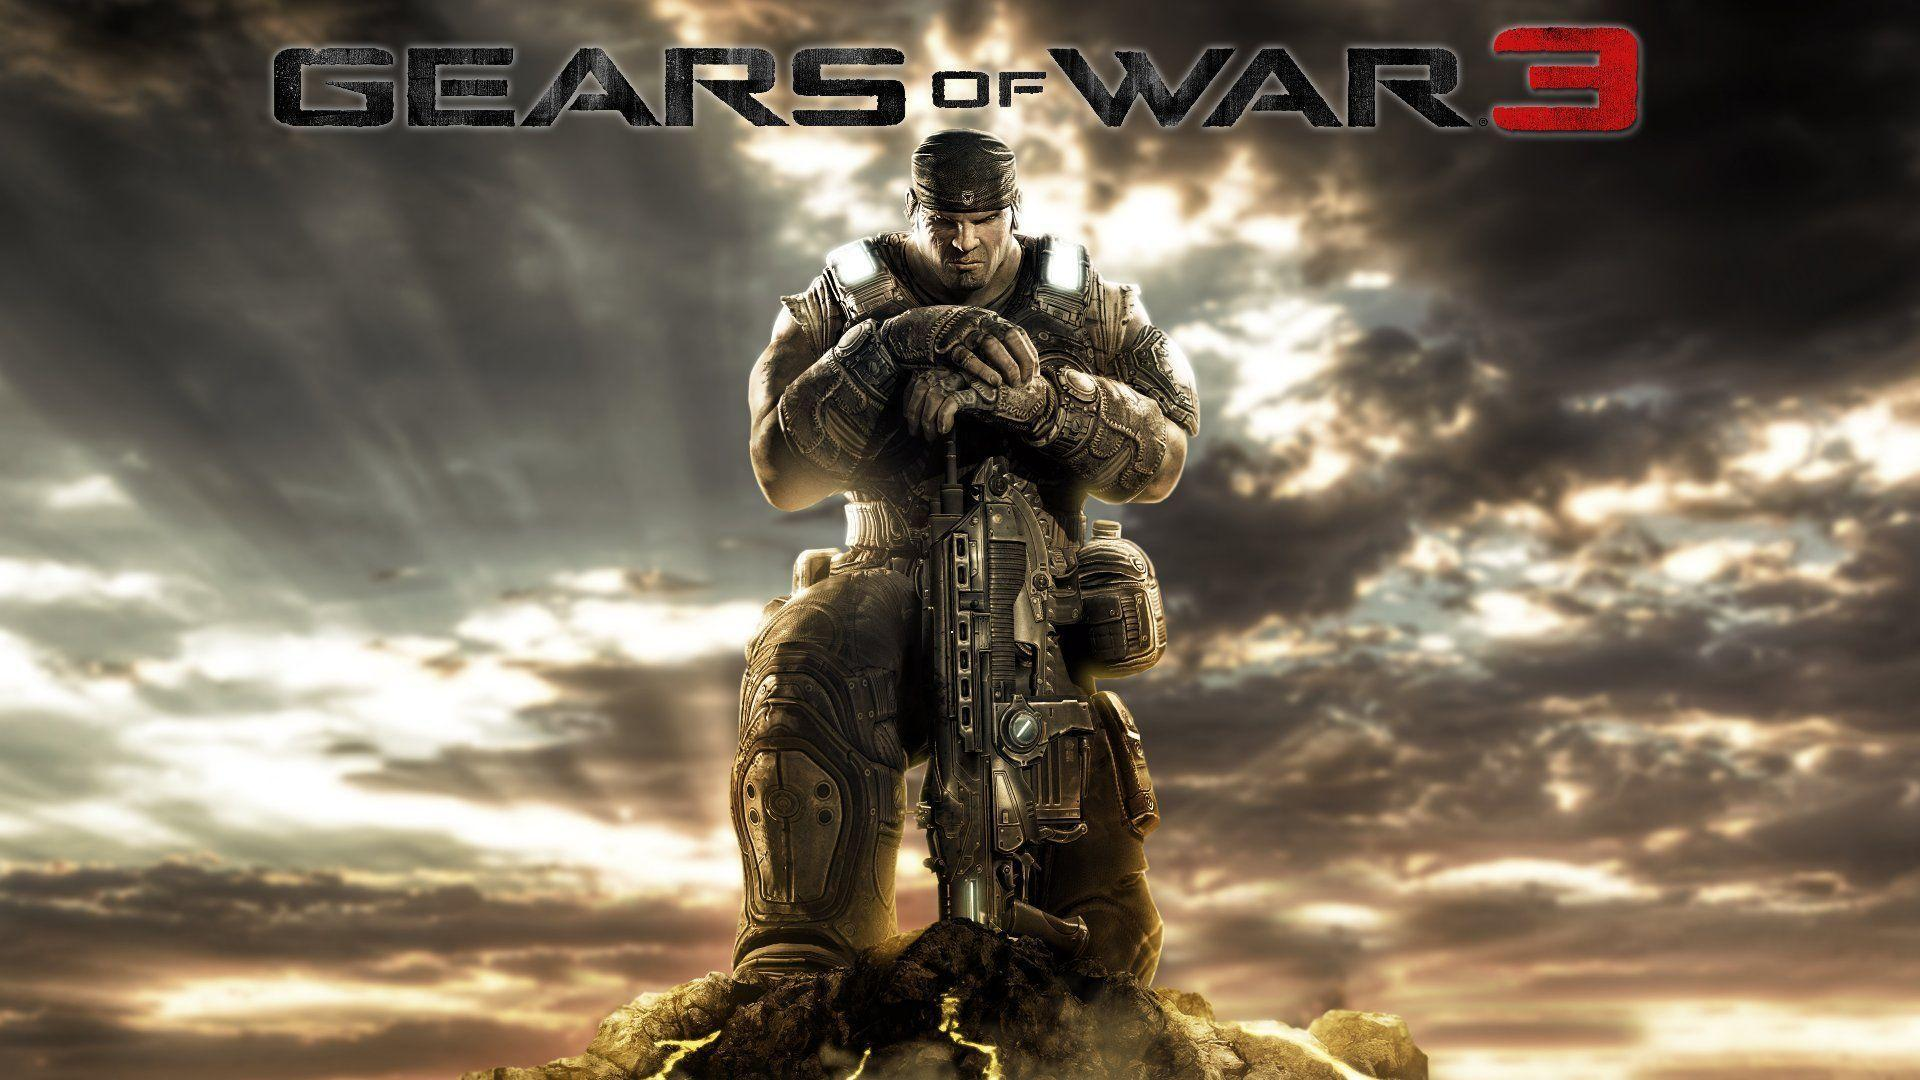 Wallpapers For > Gears Of War 3 Wallpapers 1920x1080